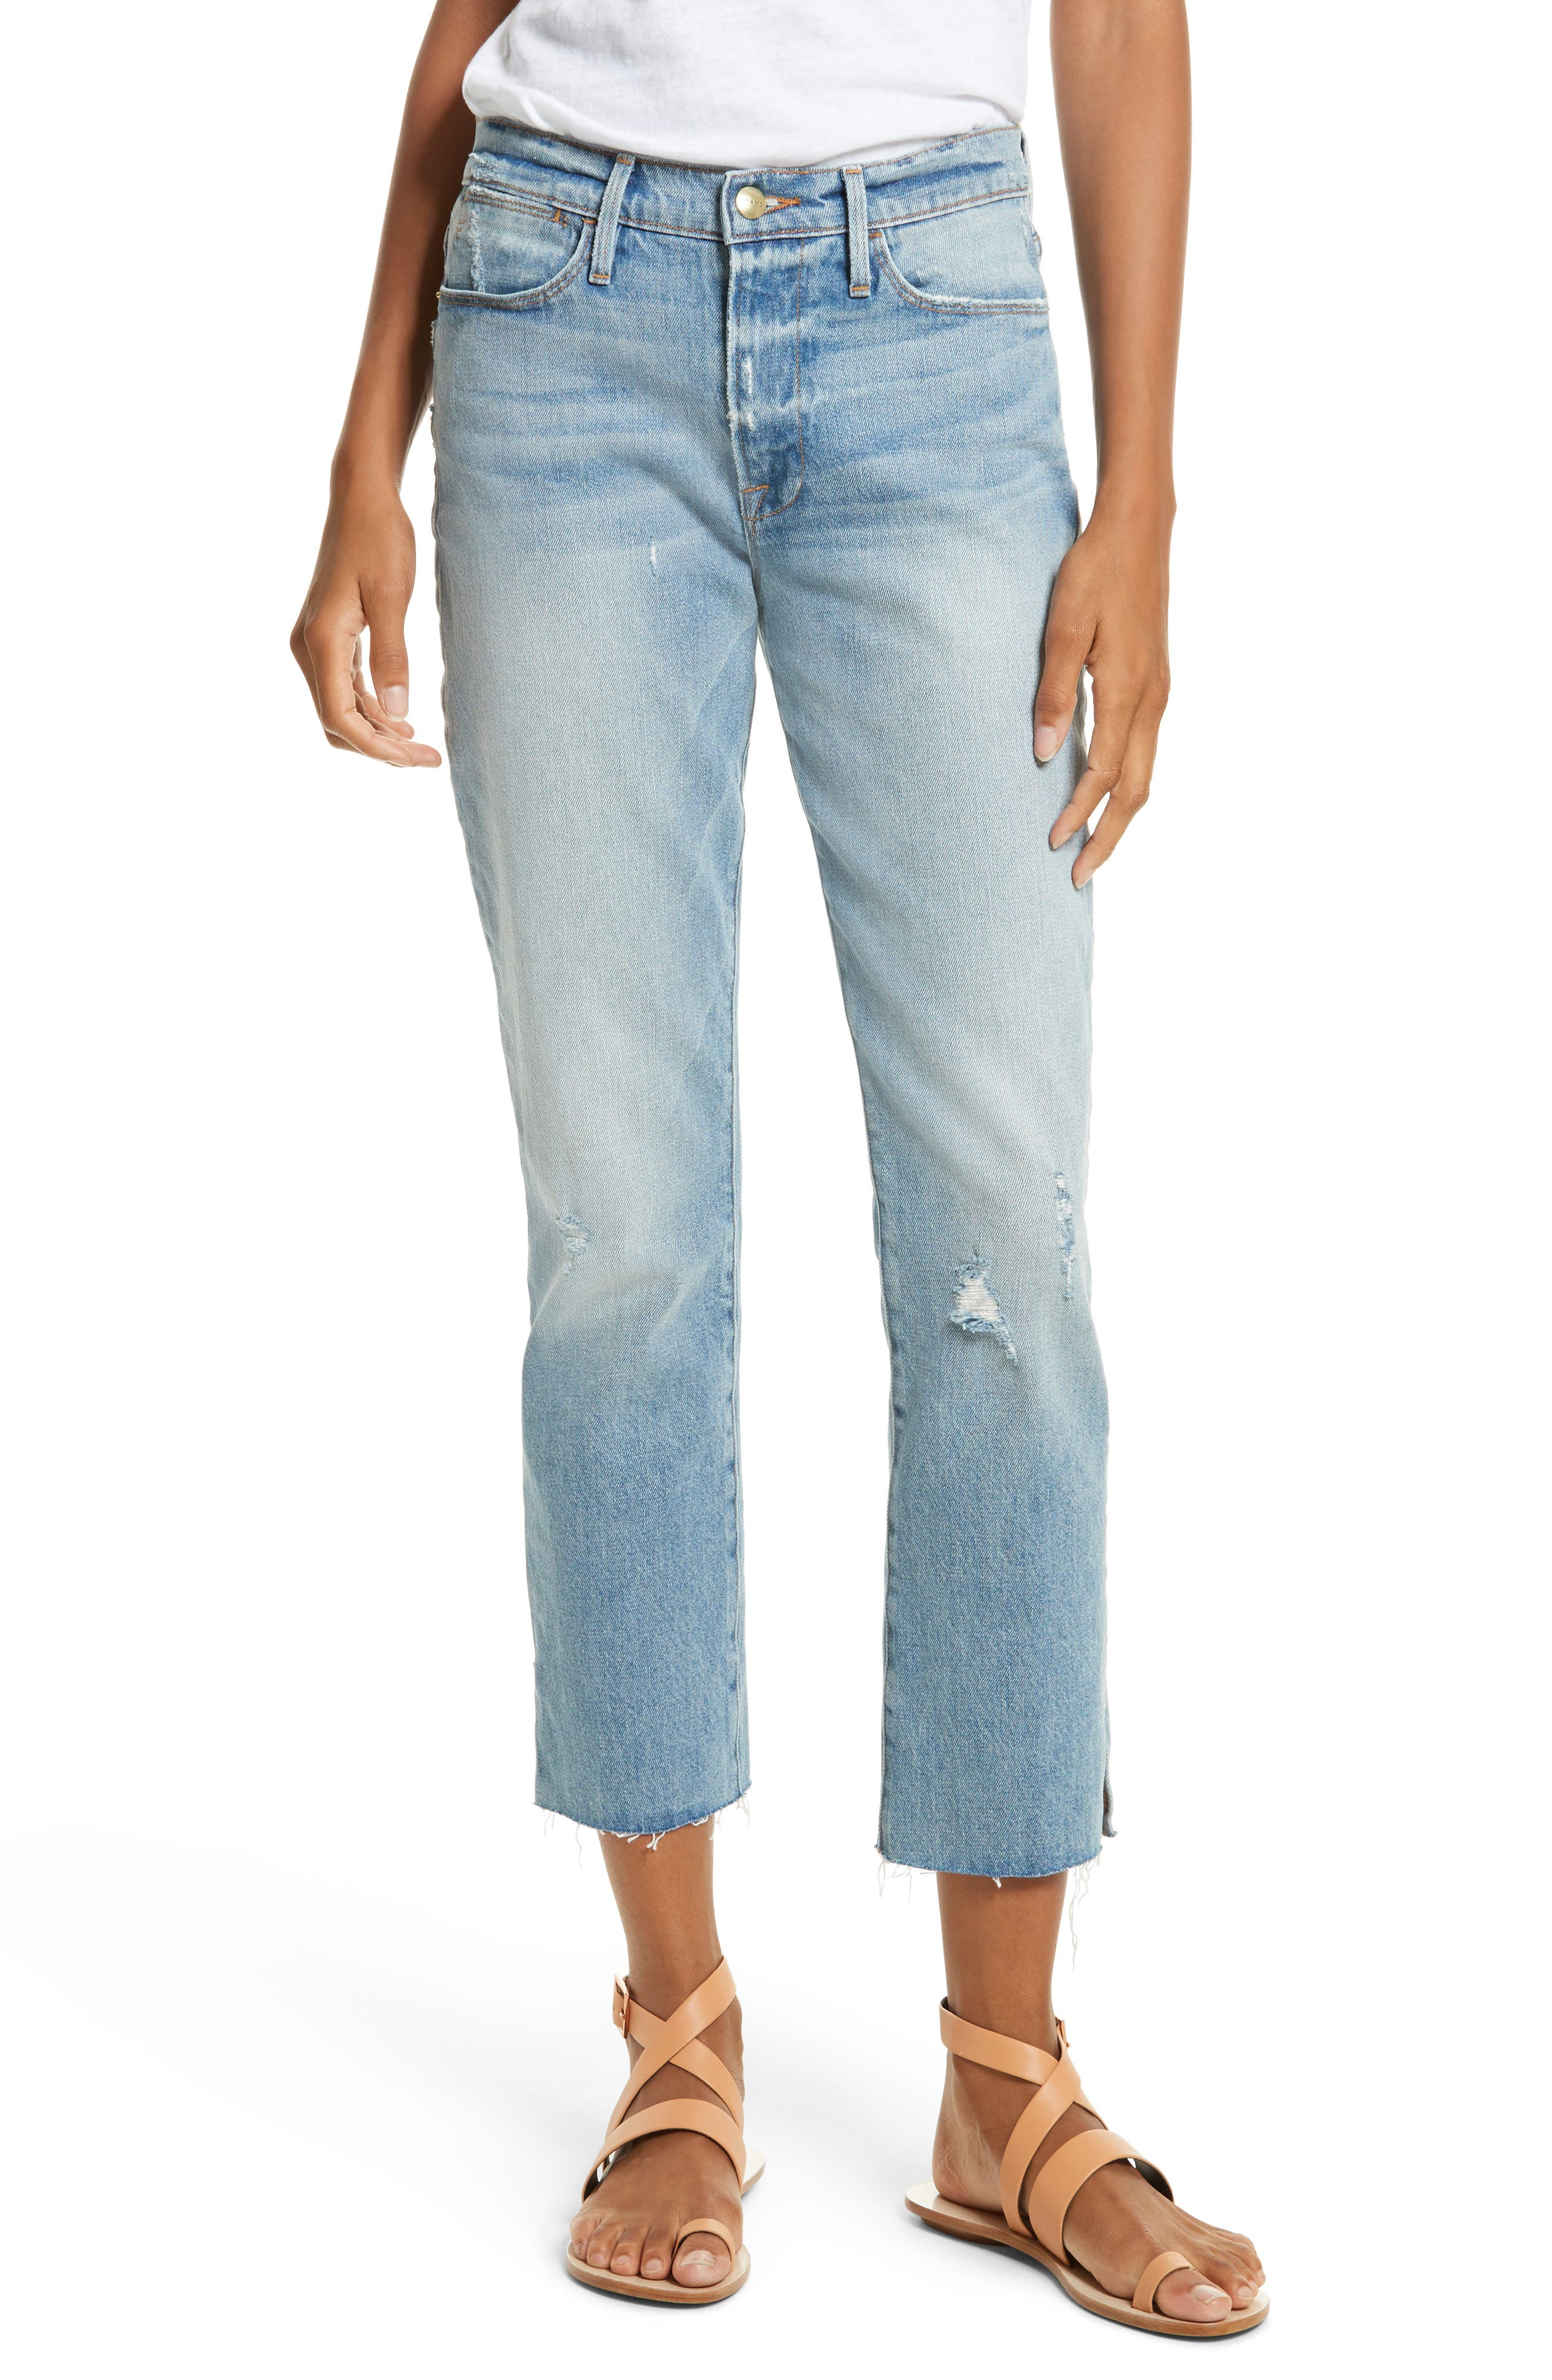 Frame Le High Crop Straight Jeans Surrey Nordstrom